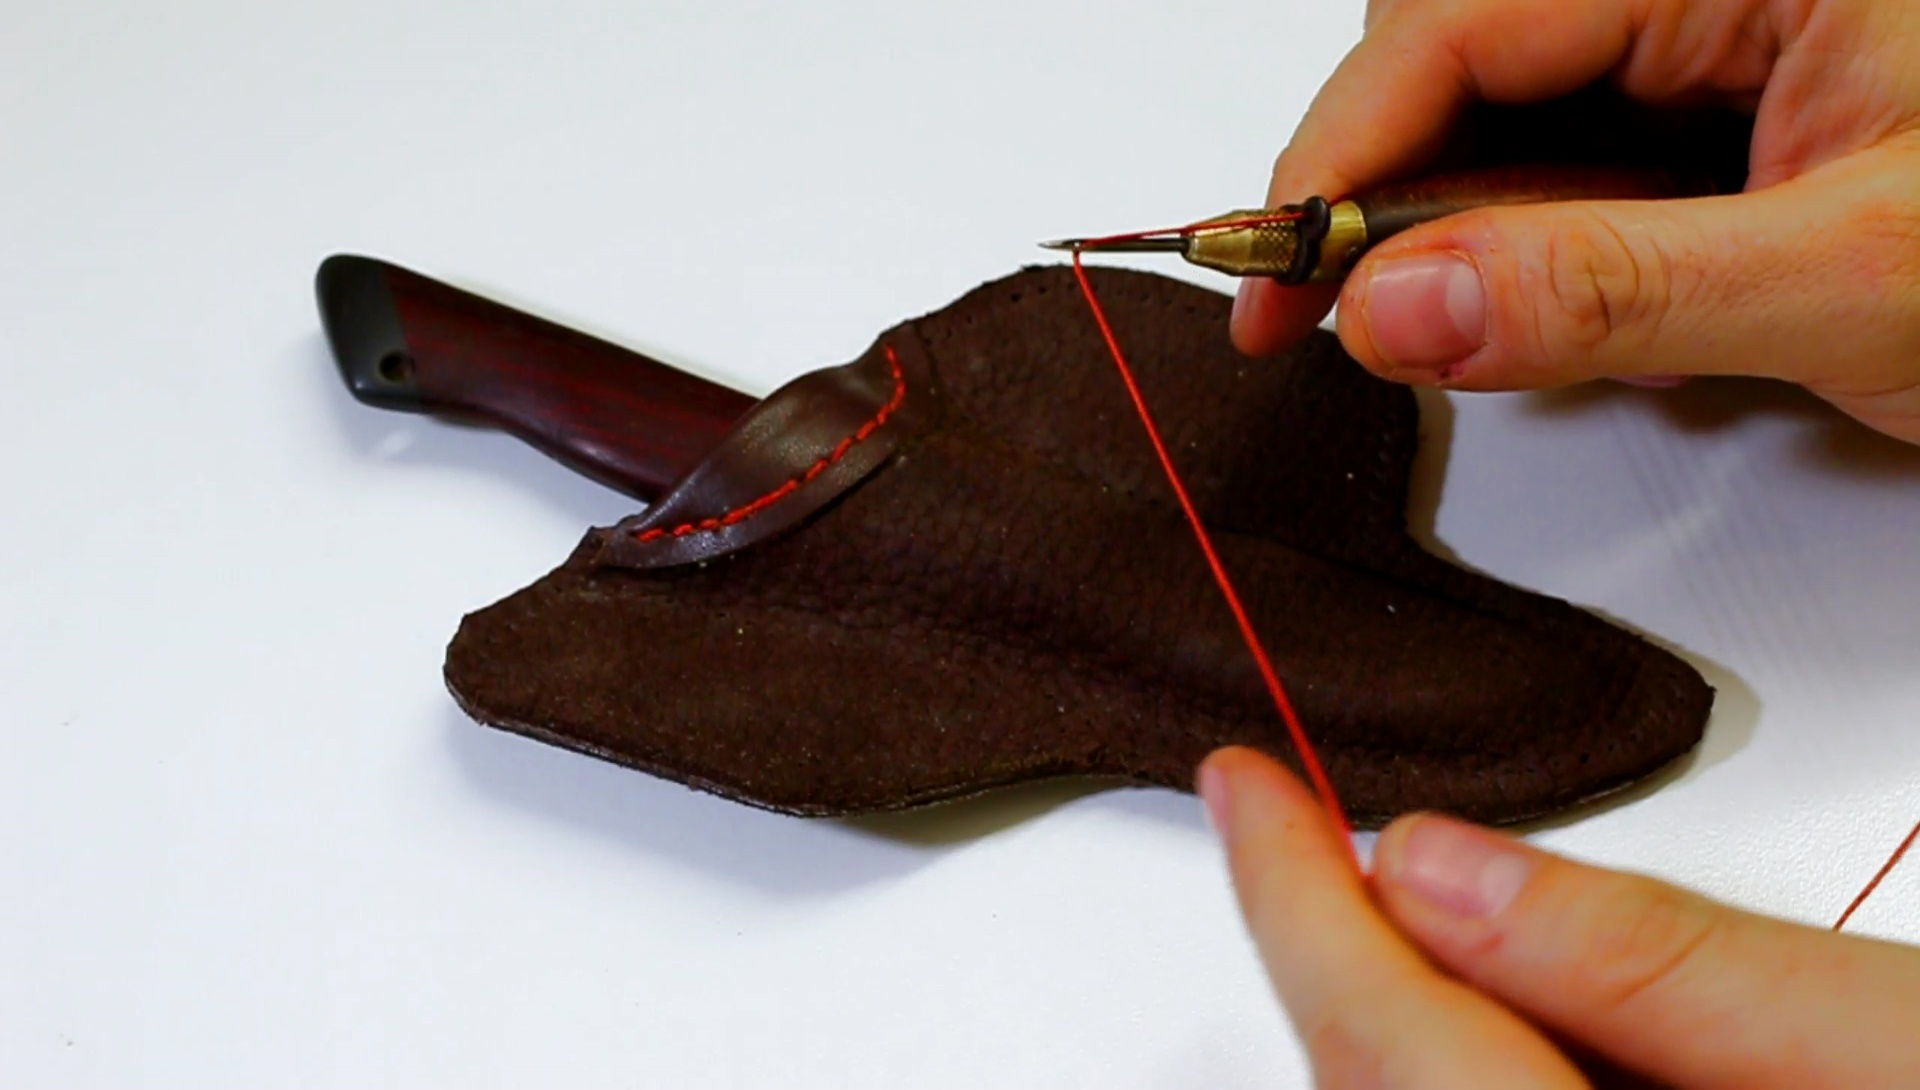 Picture of Sewing the Sheath